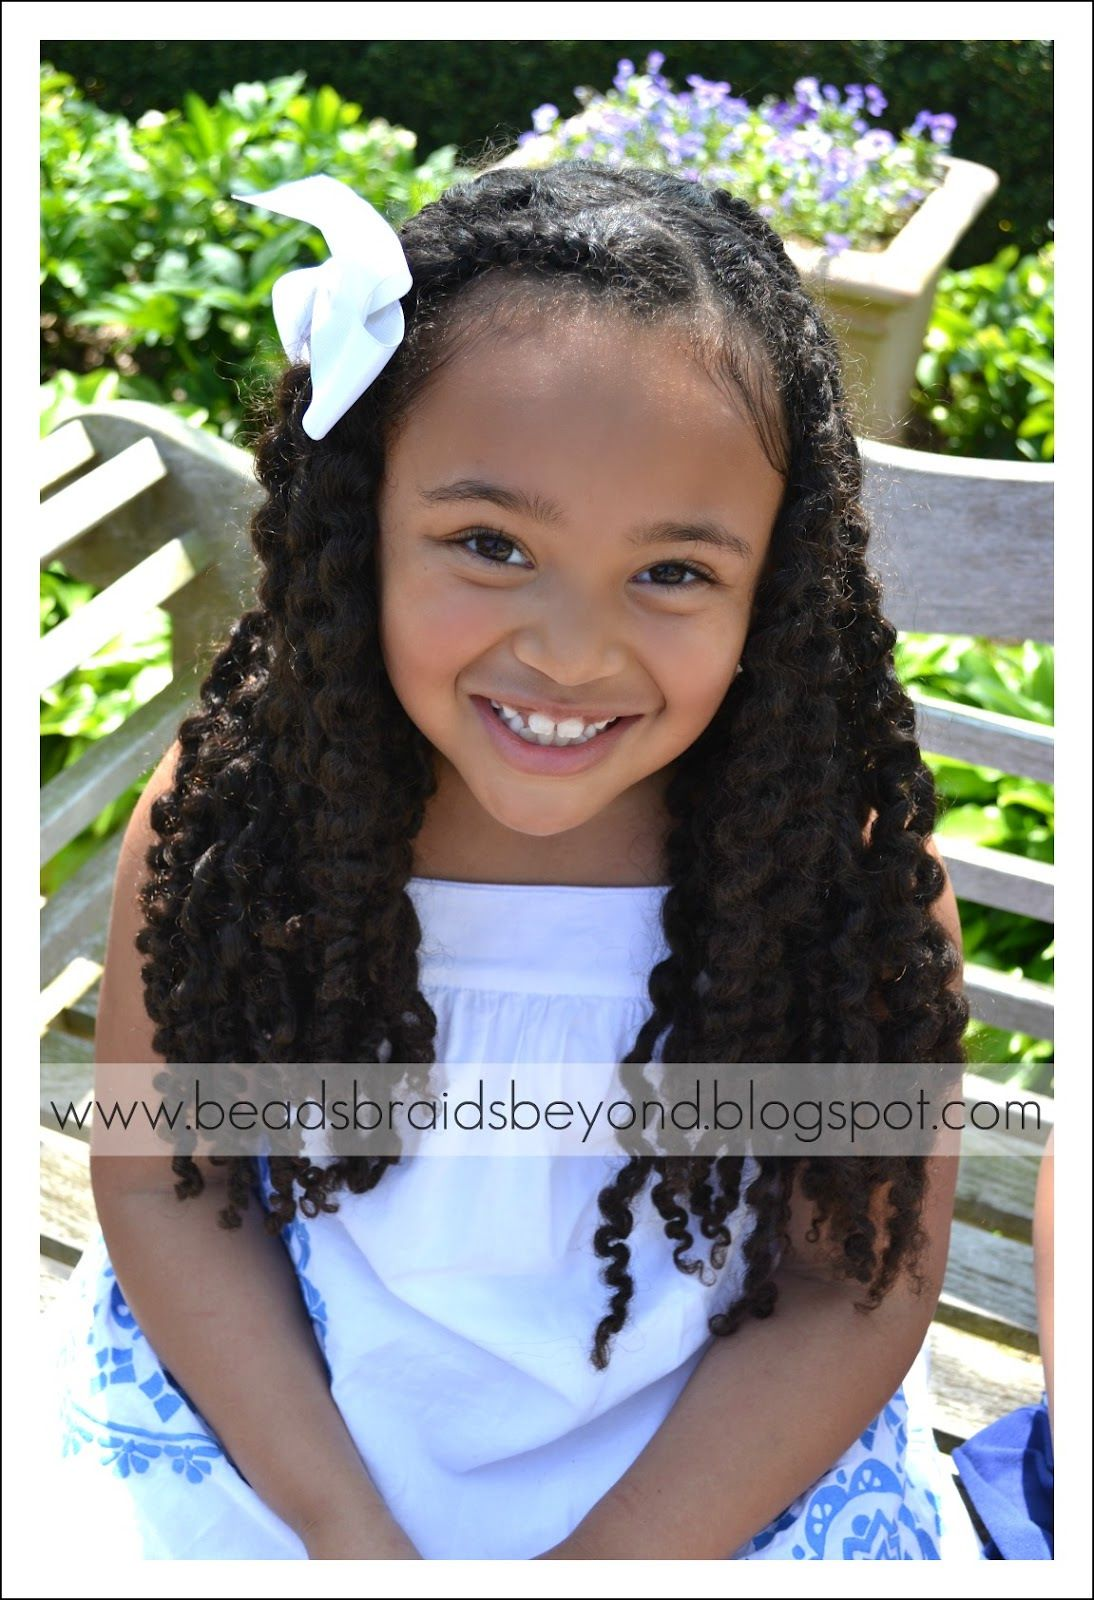 Cool Valentine Crafts That 10 Year Old Boys Beads Braids And Beyond Little Girls Little Girls Natural Hairstyles Girls Natural Hairstyles Natural Hair Styles